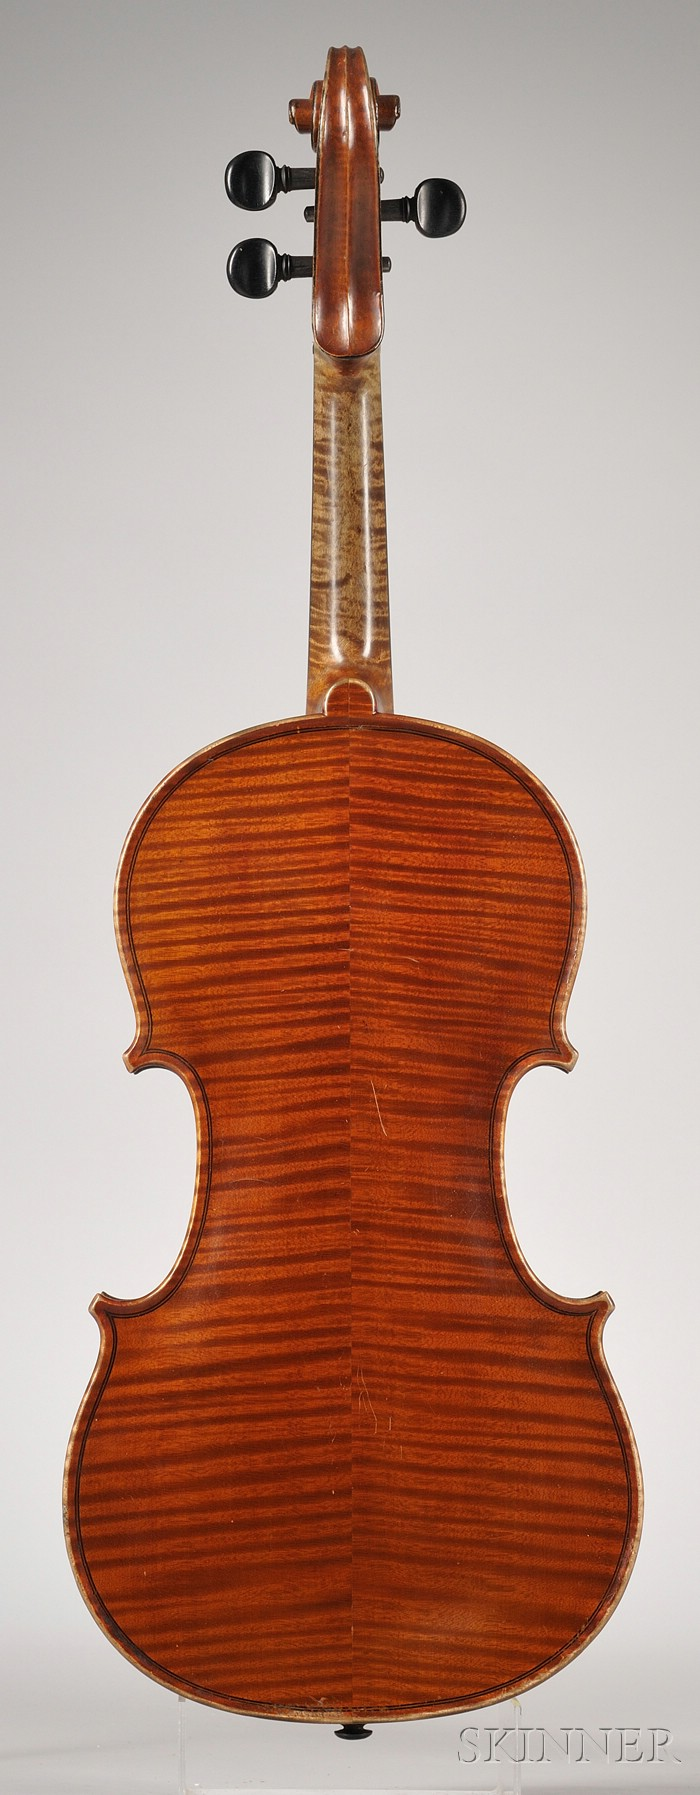 French Violin, Paul Blanchard Workshop, Lyon, 1899